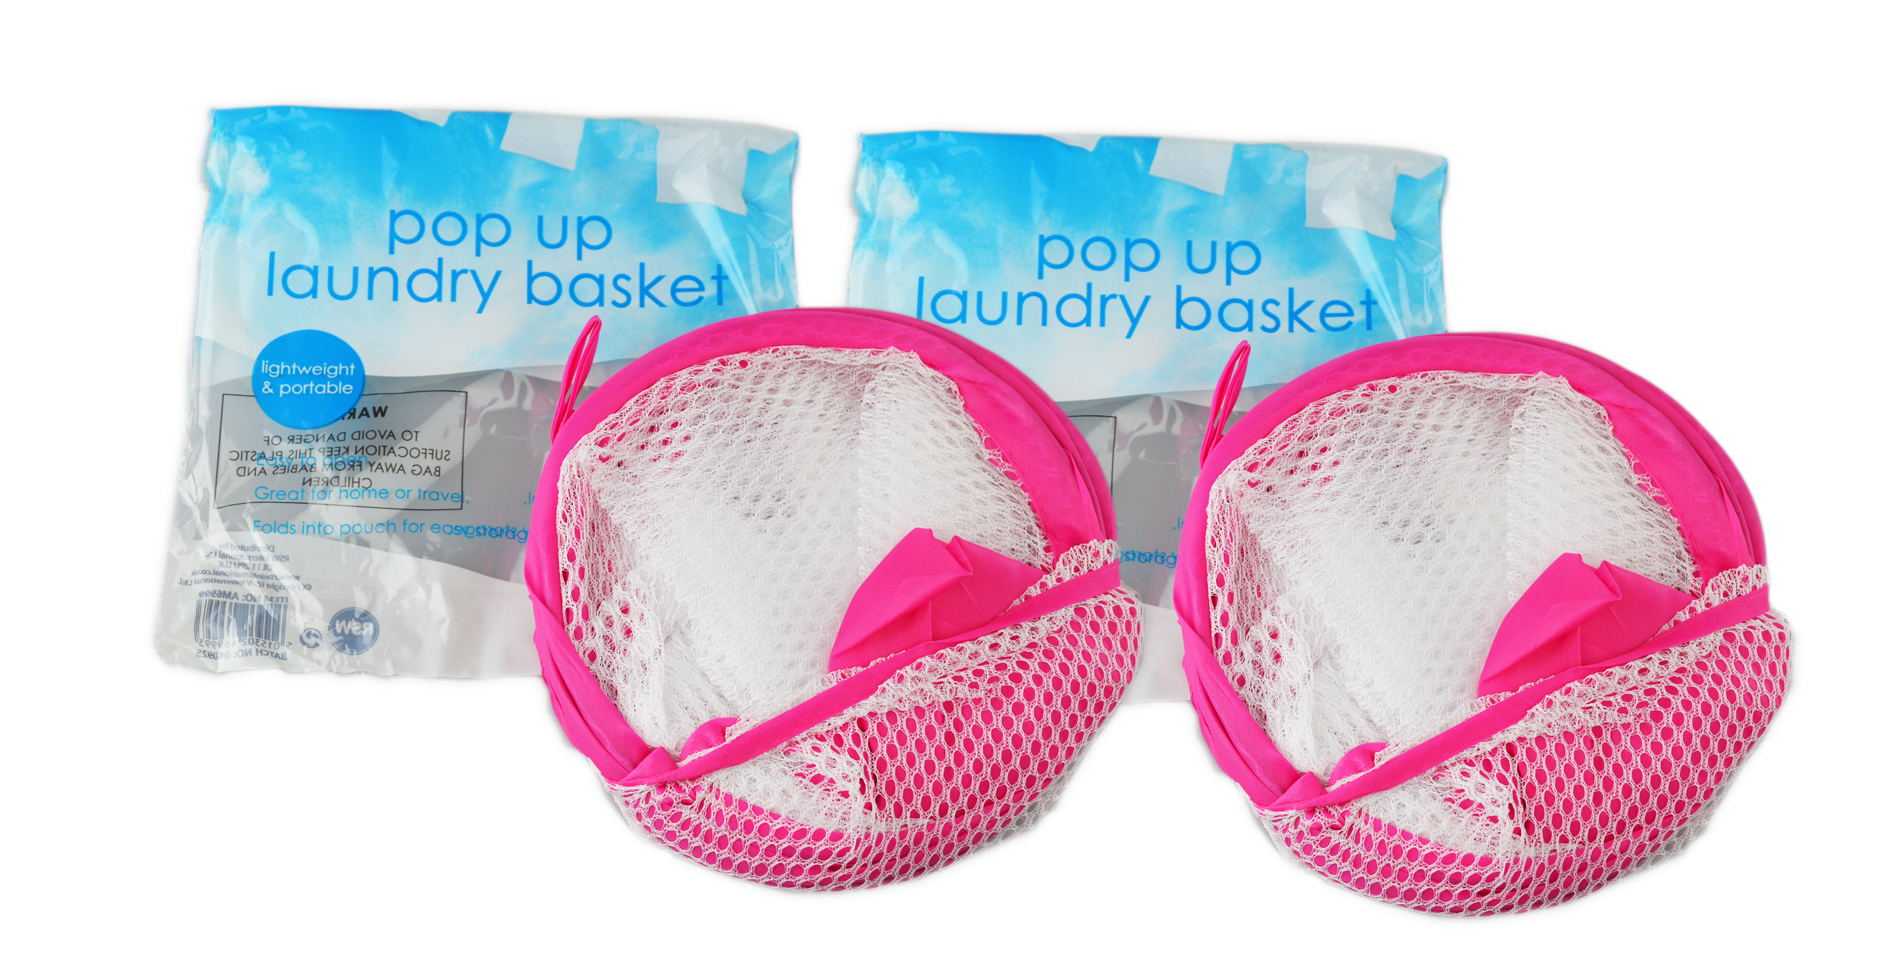 Folding-Mesh-Laundry-Basket-Ideal-for-Home-or-Travel-034-Royle-Home-034 thumbnail 15